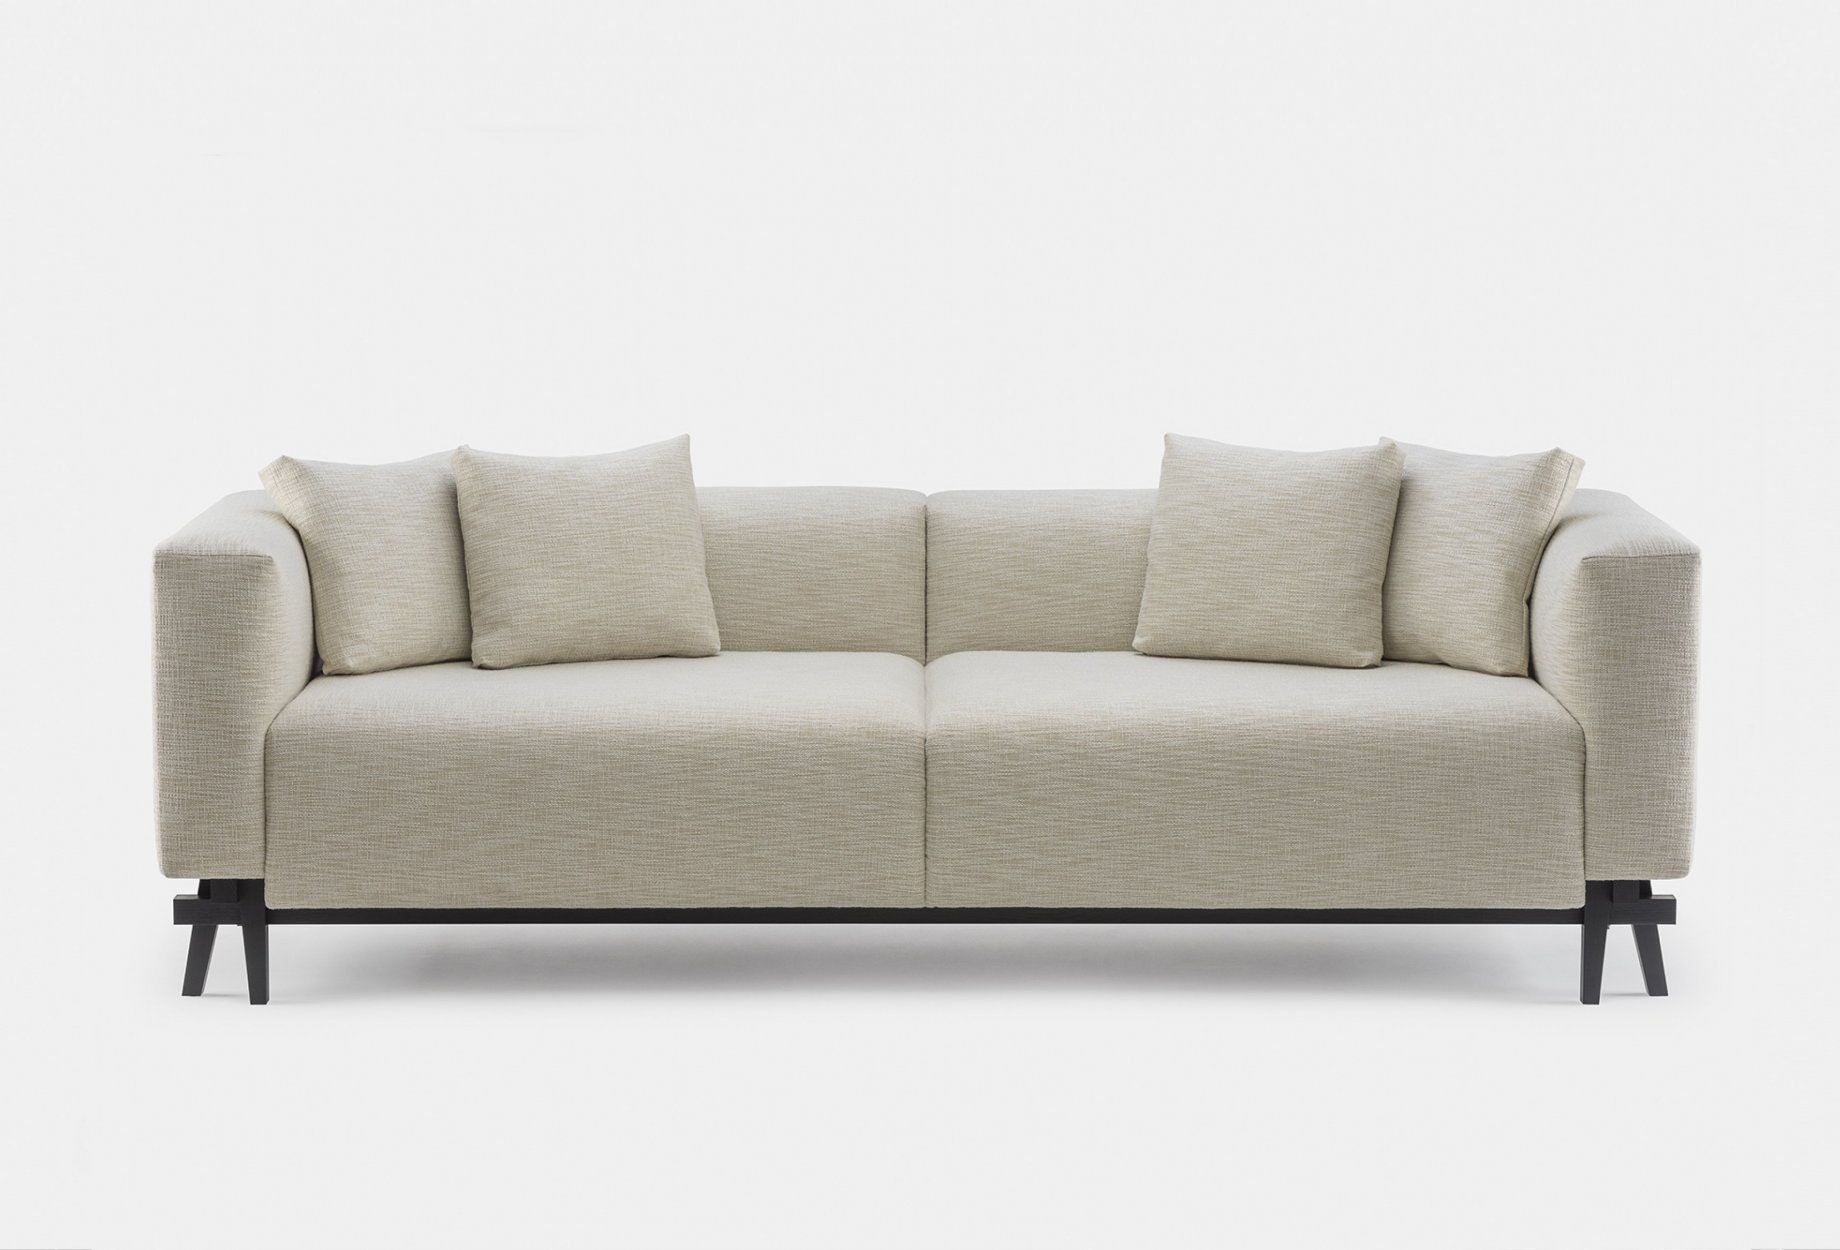 788 Sofa Eight By Neri Hu In Black Stained Ash And Fabric  Frontweb 1840X1250